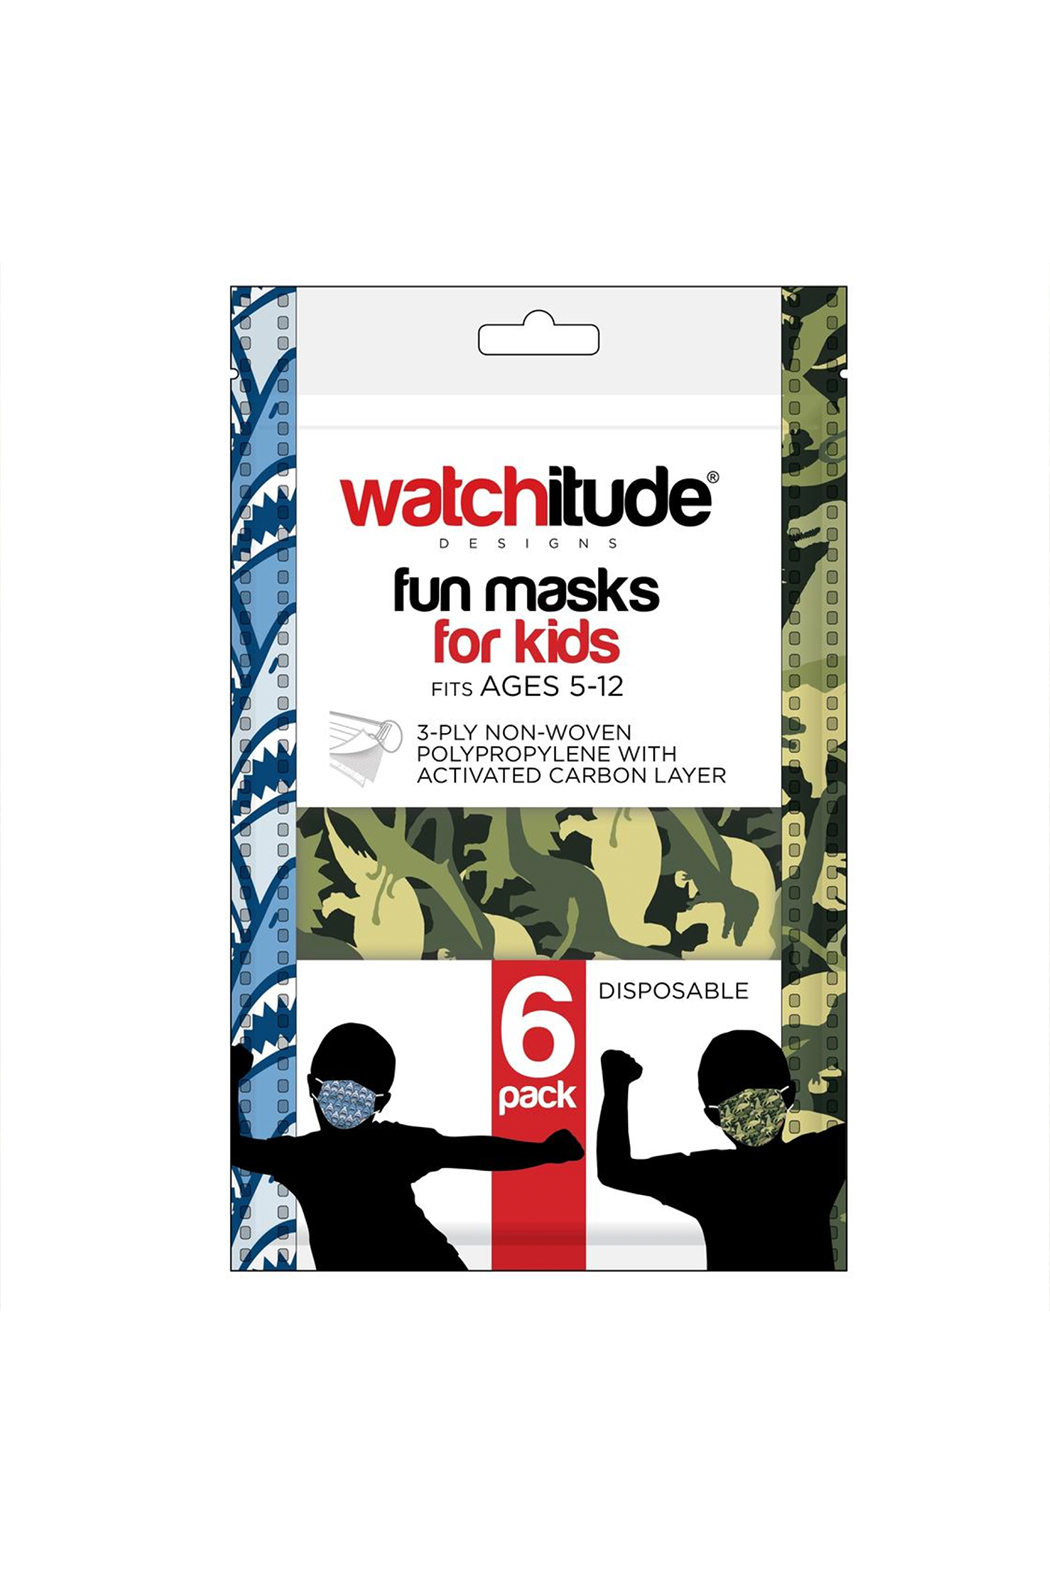 Watchitude Fun Carbon Masks Shark Frenzy/Dino Camo 6 Pack - Kids Ages 5-12 - Main Image